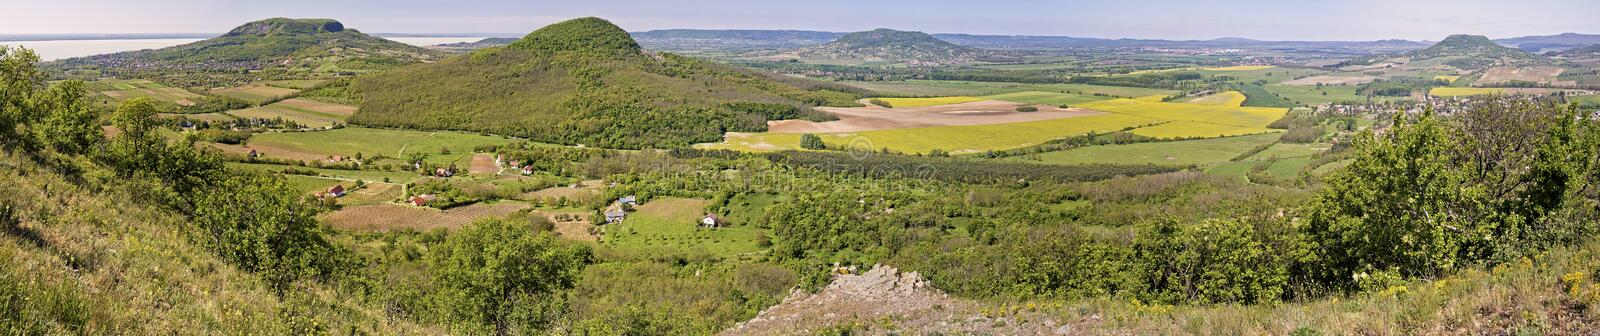 Panorama picture from the volcanoes in Hungary, near the lake Ba. Laton stock photos